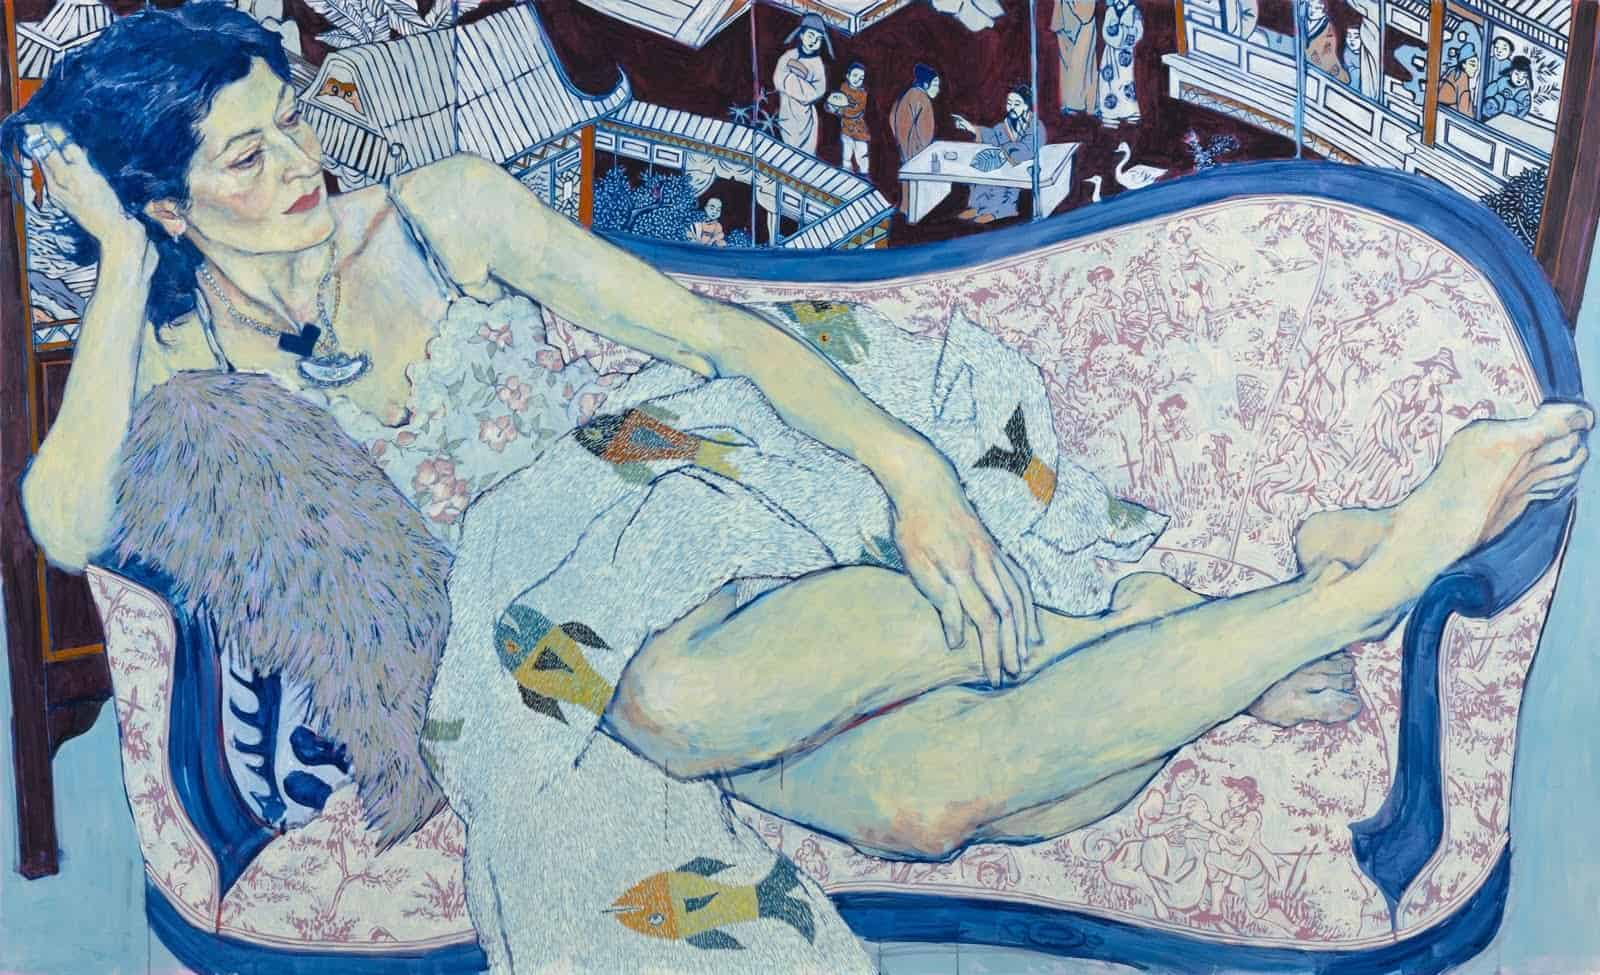 Queen Jane, Approximately, 2011, Acrylic on canvas. 66 x 108 in.